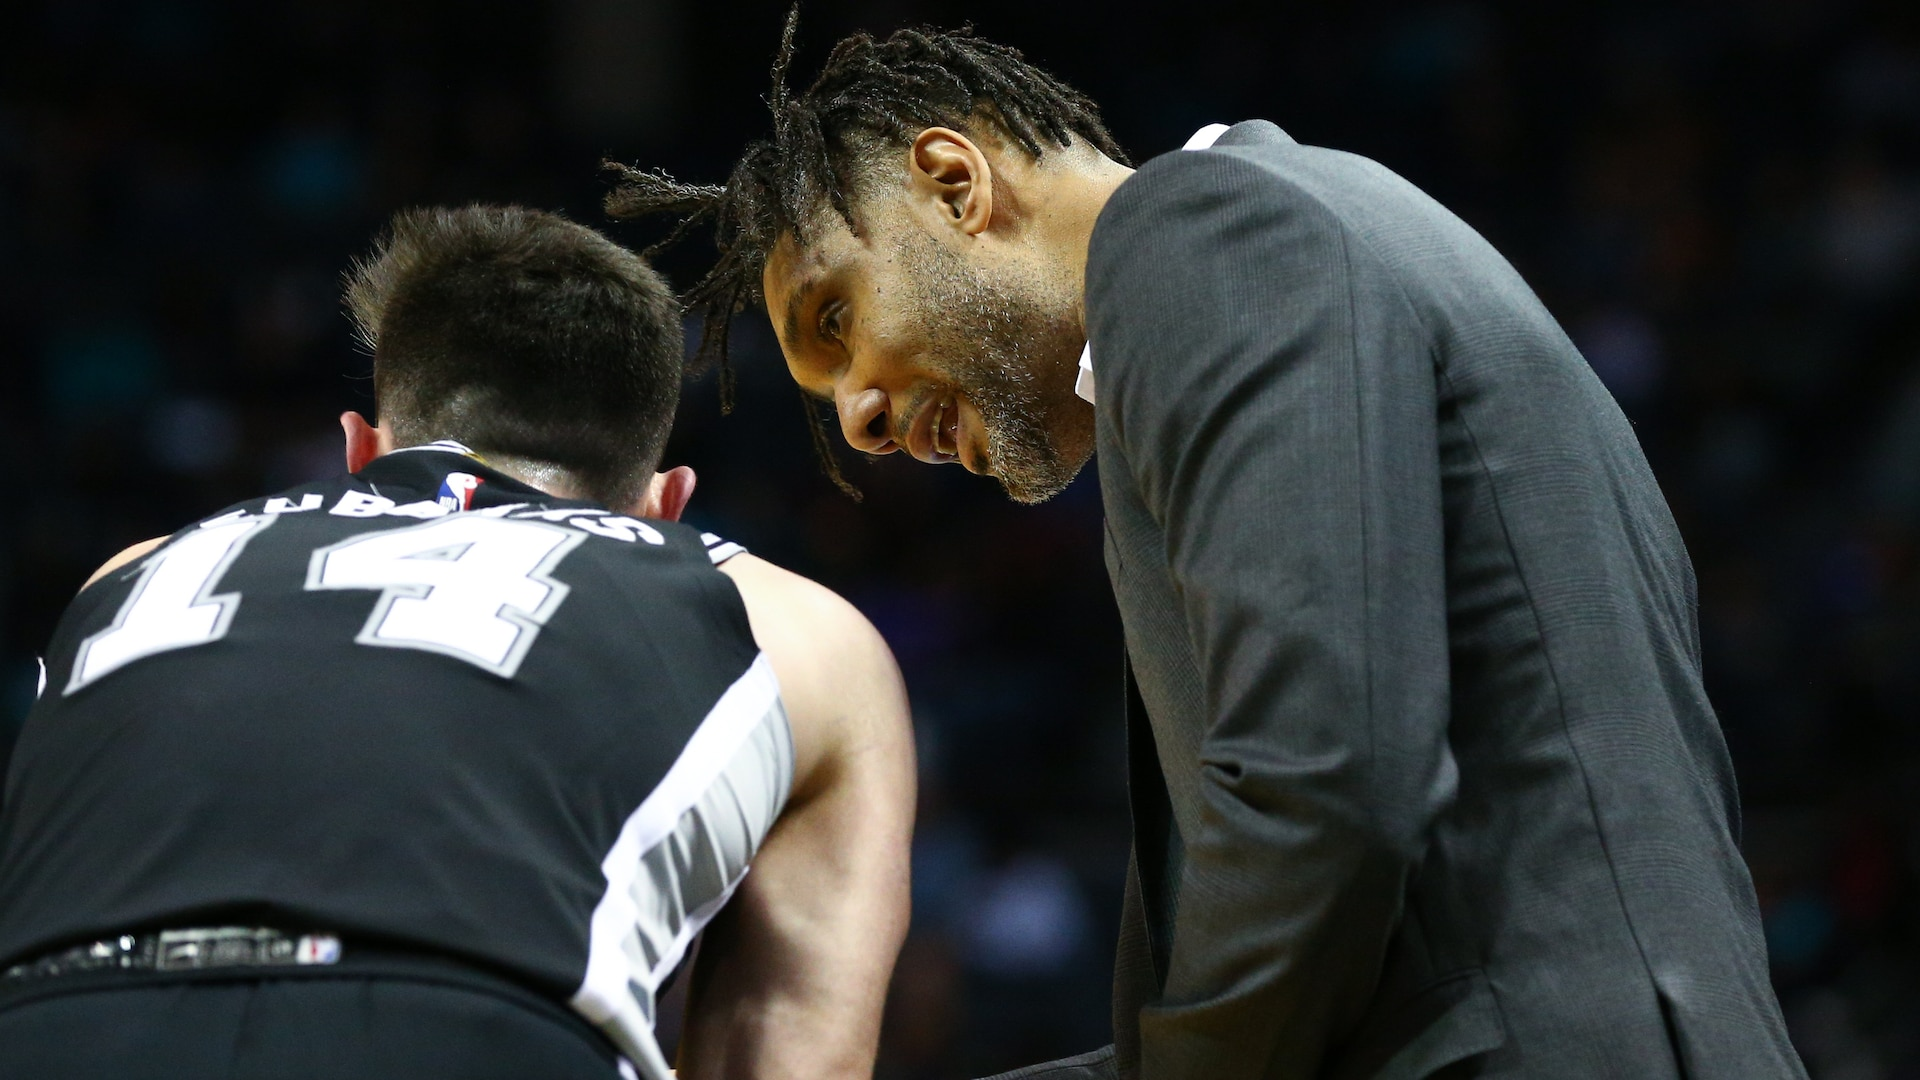 Tim Duncan makes head coaching debut in Spurs' win against Hornets